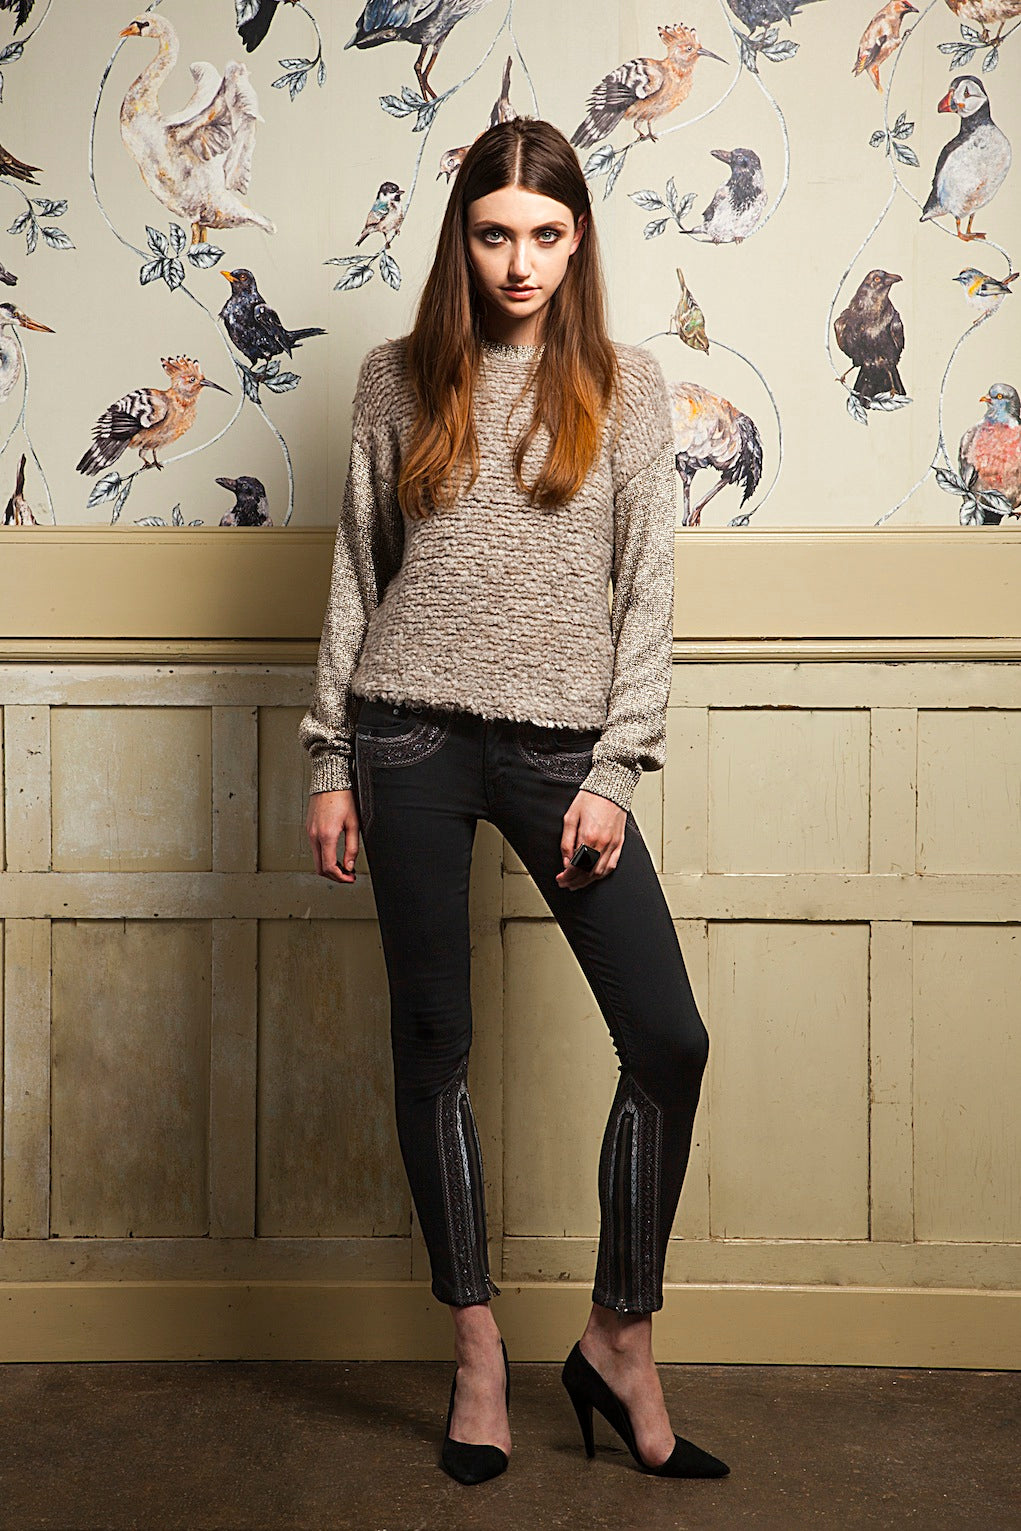 donna ida, london fashion, london style, jersey, jumper, skinny jeans, leather jeans, embelishments, wallpaper